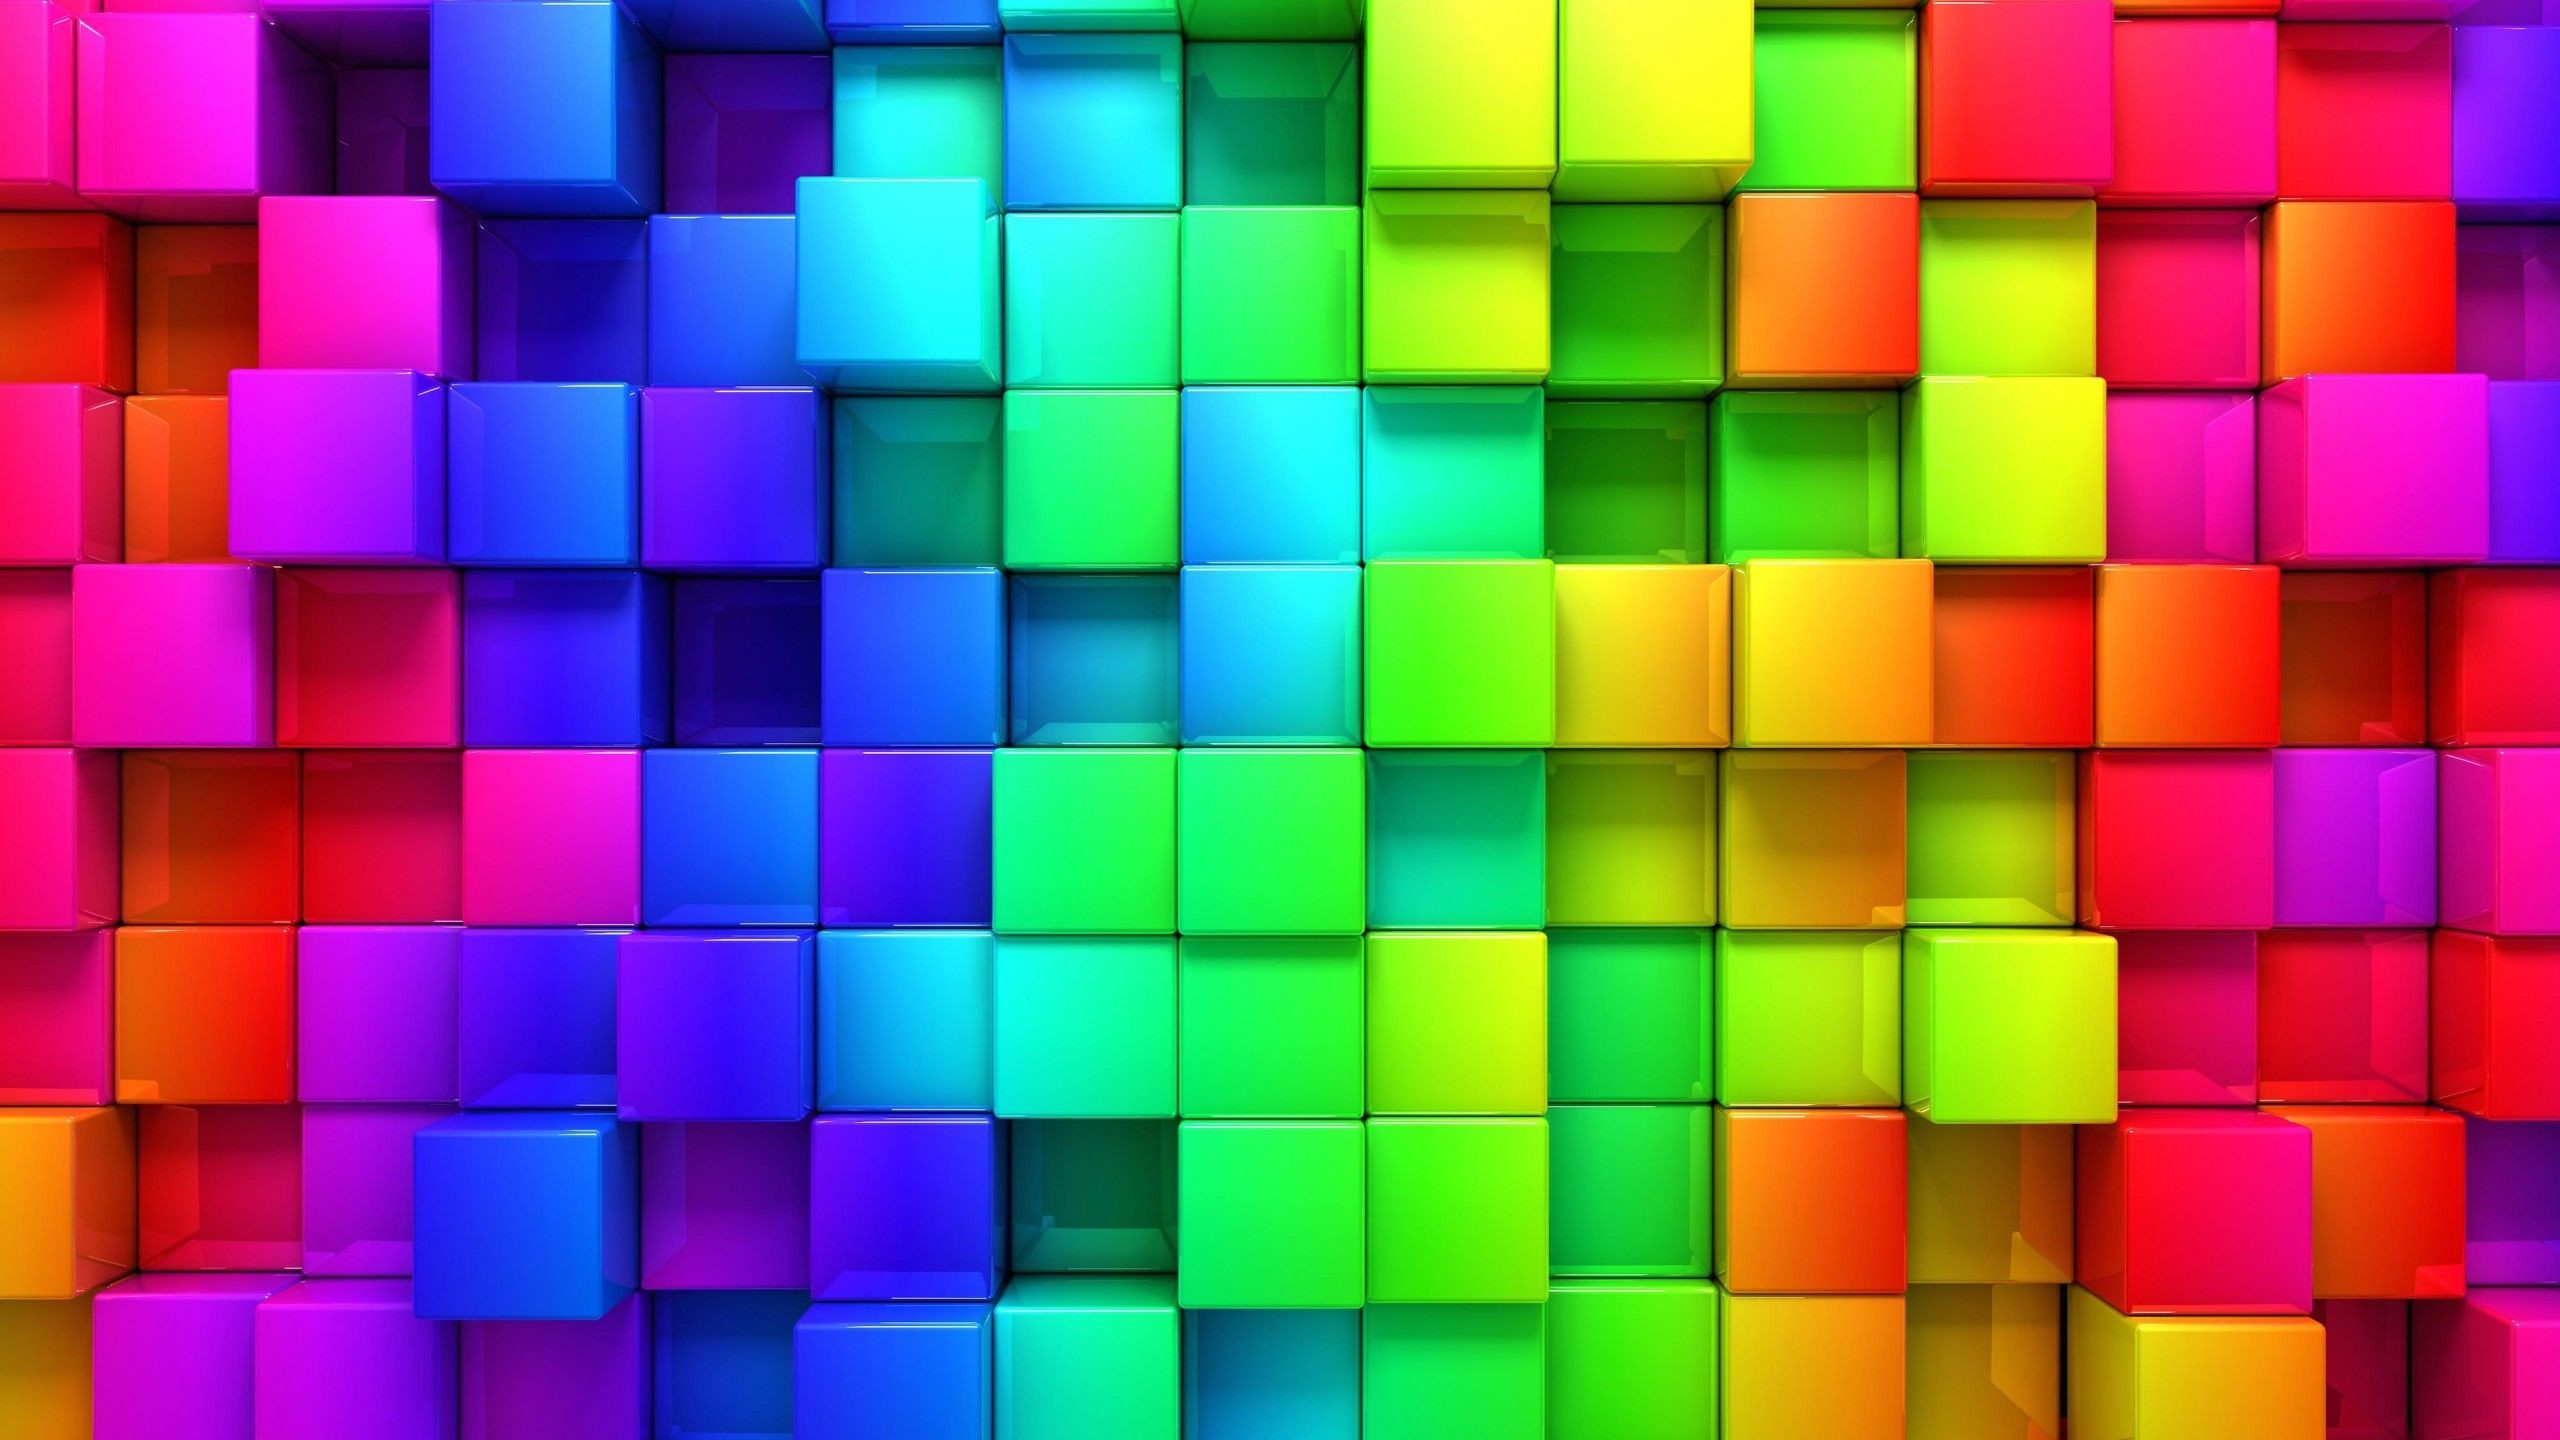 Res: 2560x1440, cubic-rainbow-wallpaper-for--62-384.jpg (